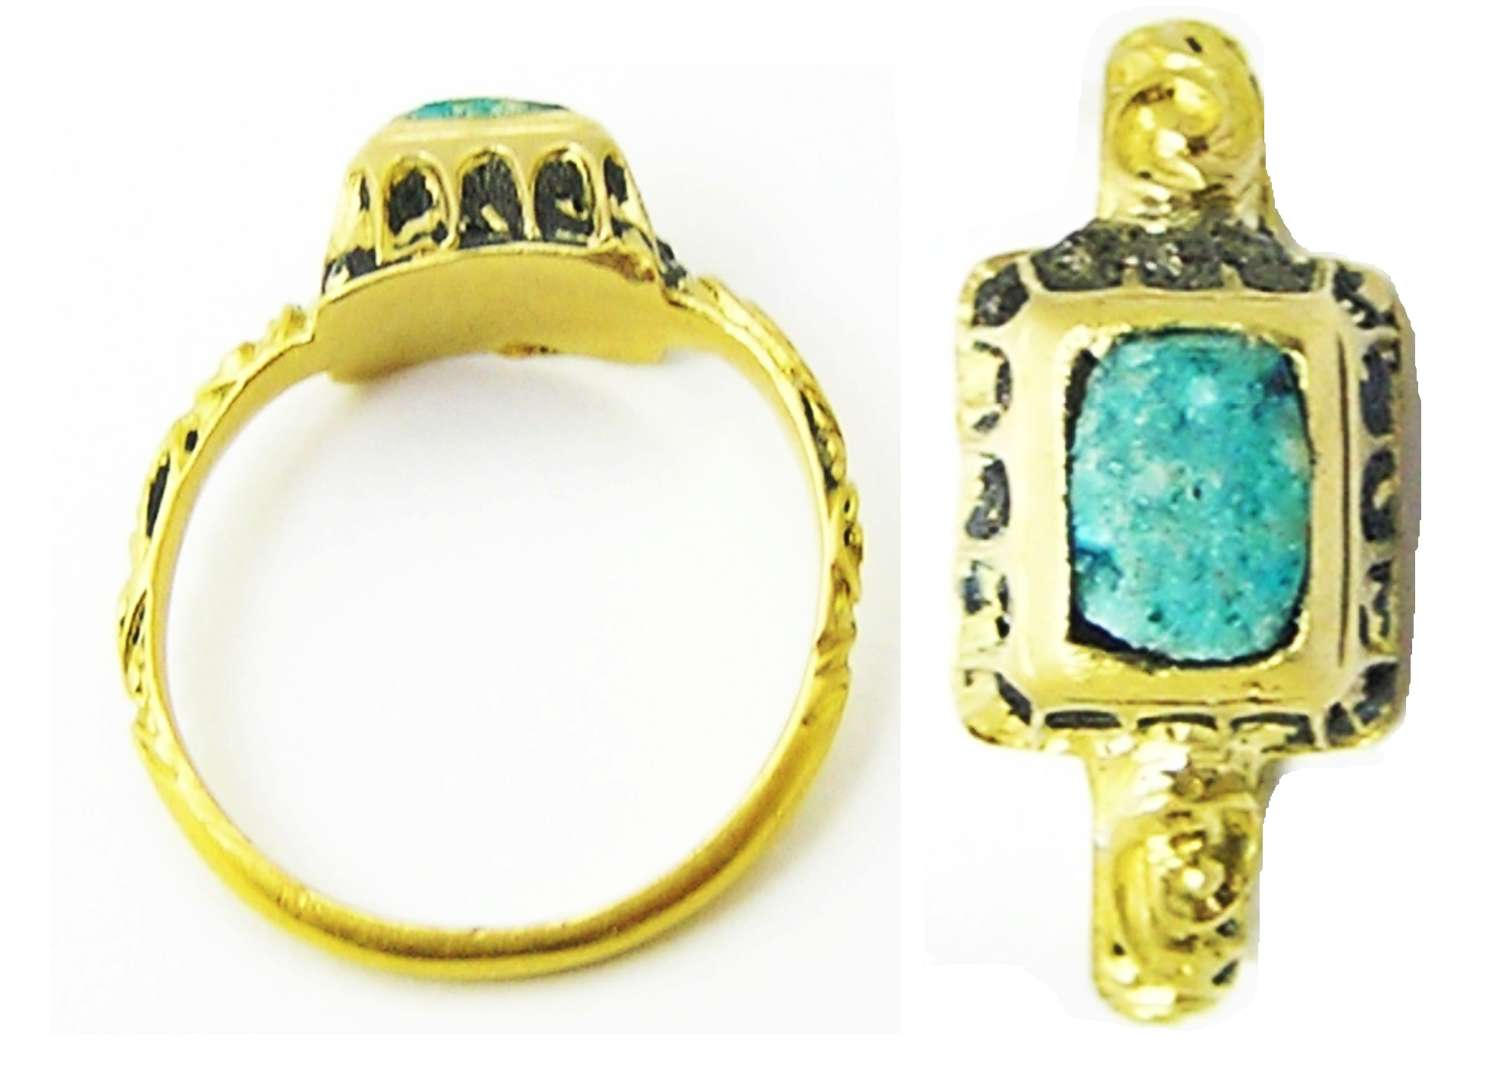 Baroque period gold and enamel finger ring